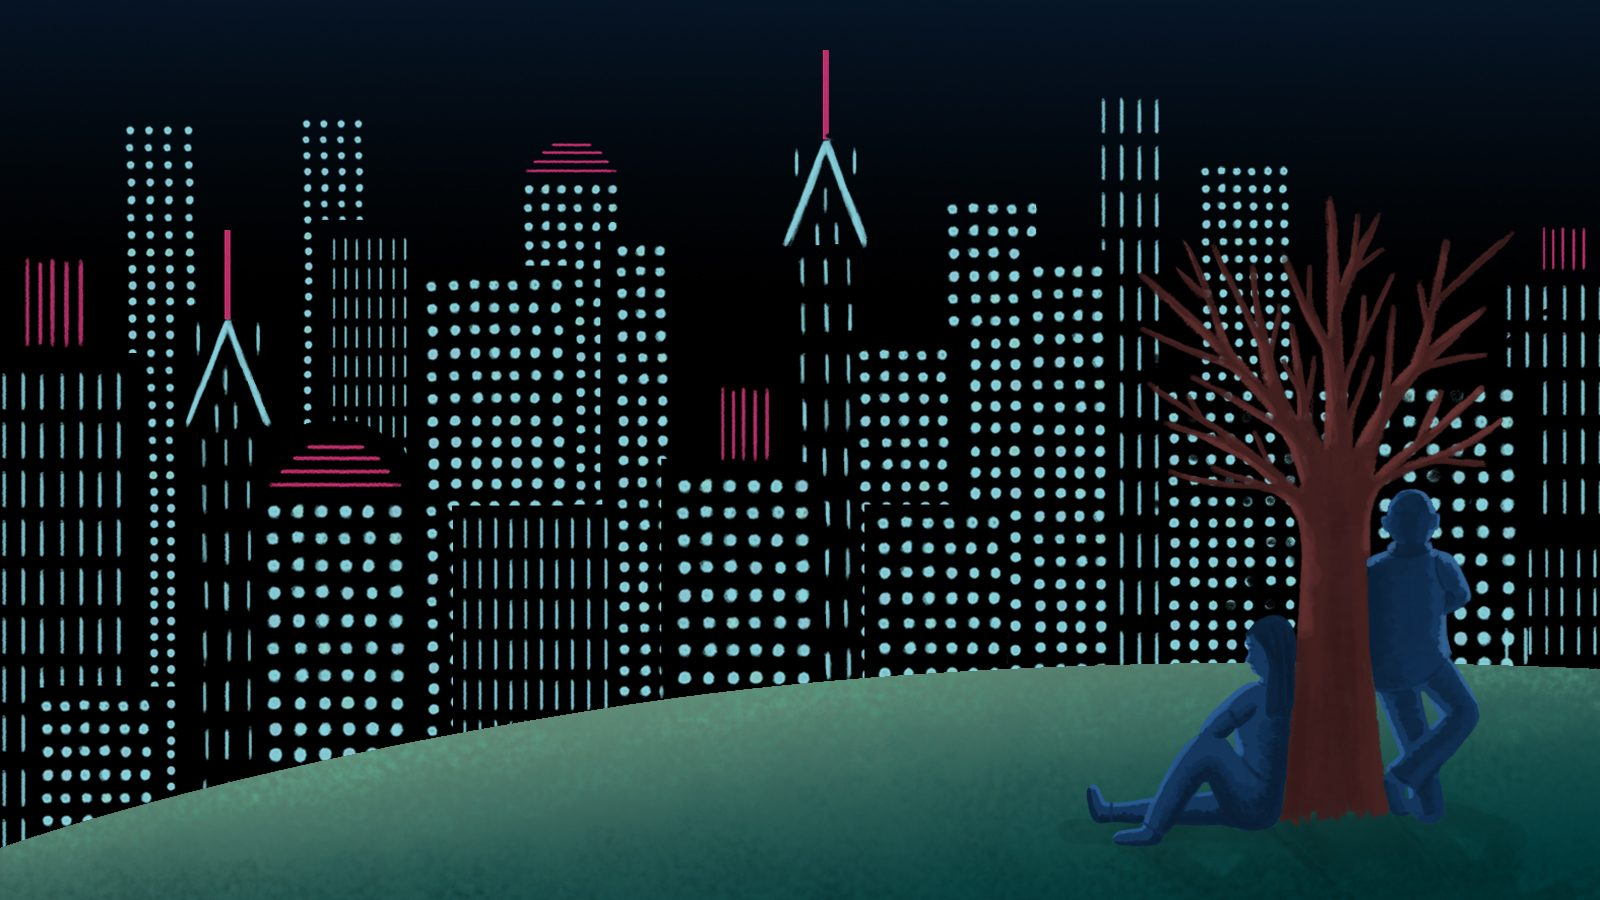 Illustration of two beings leaning on tree looking out at the city at night.